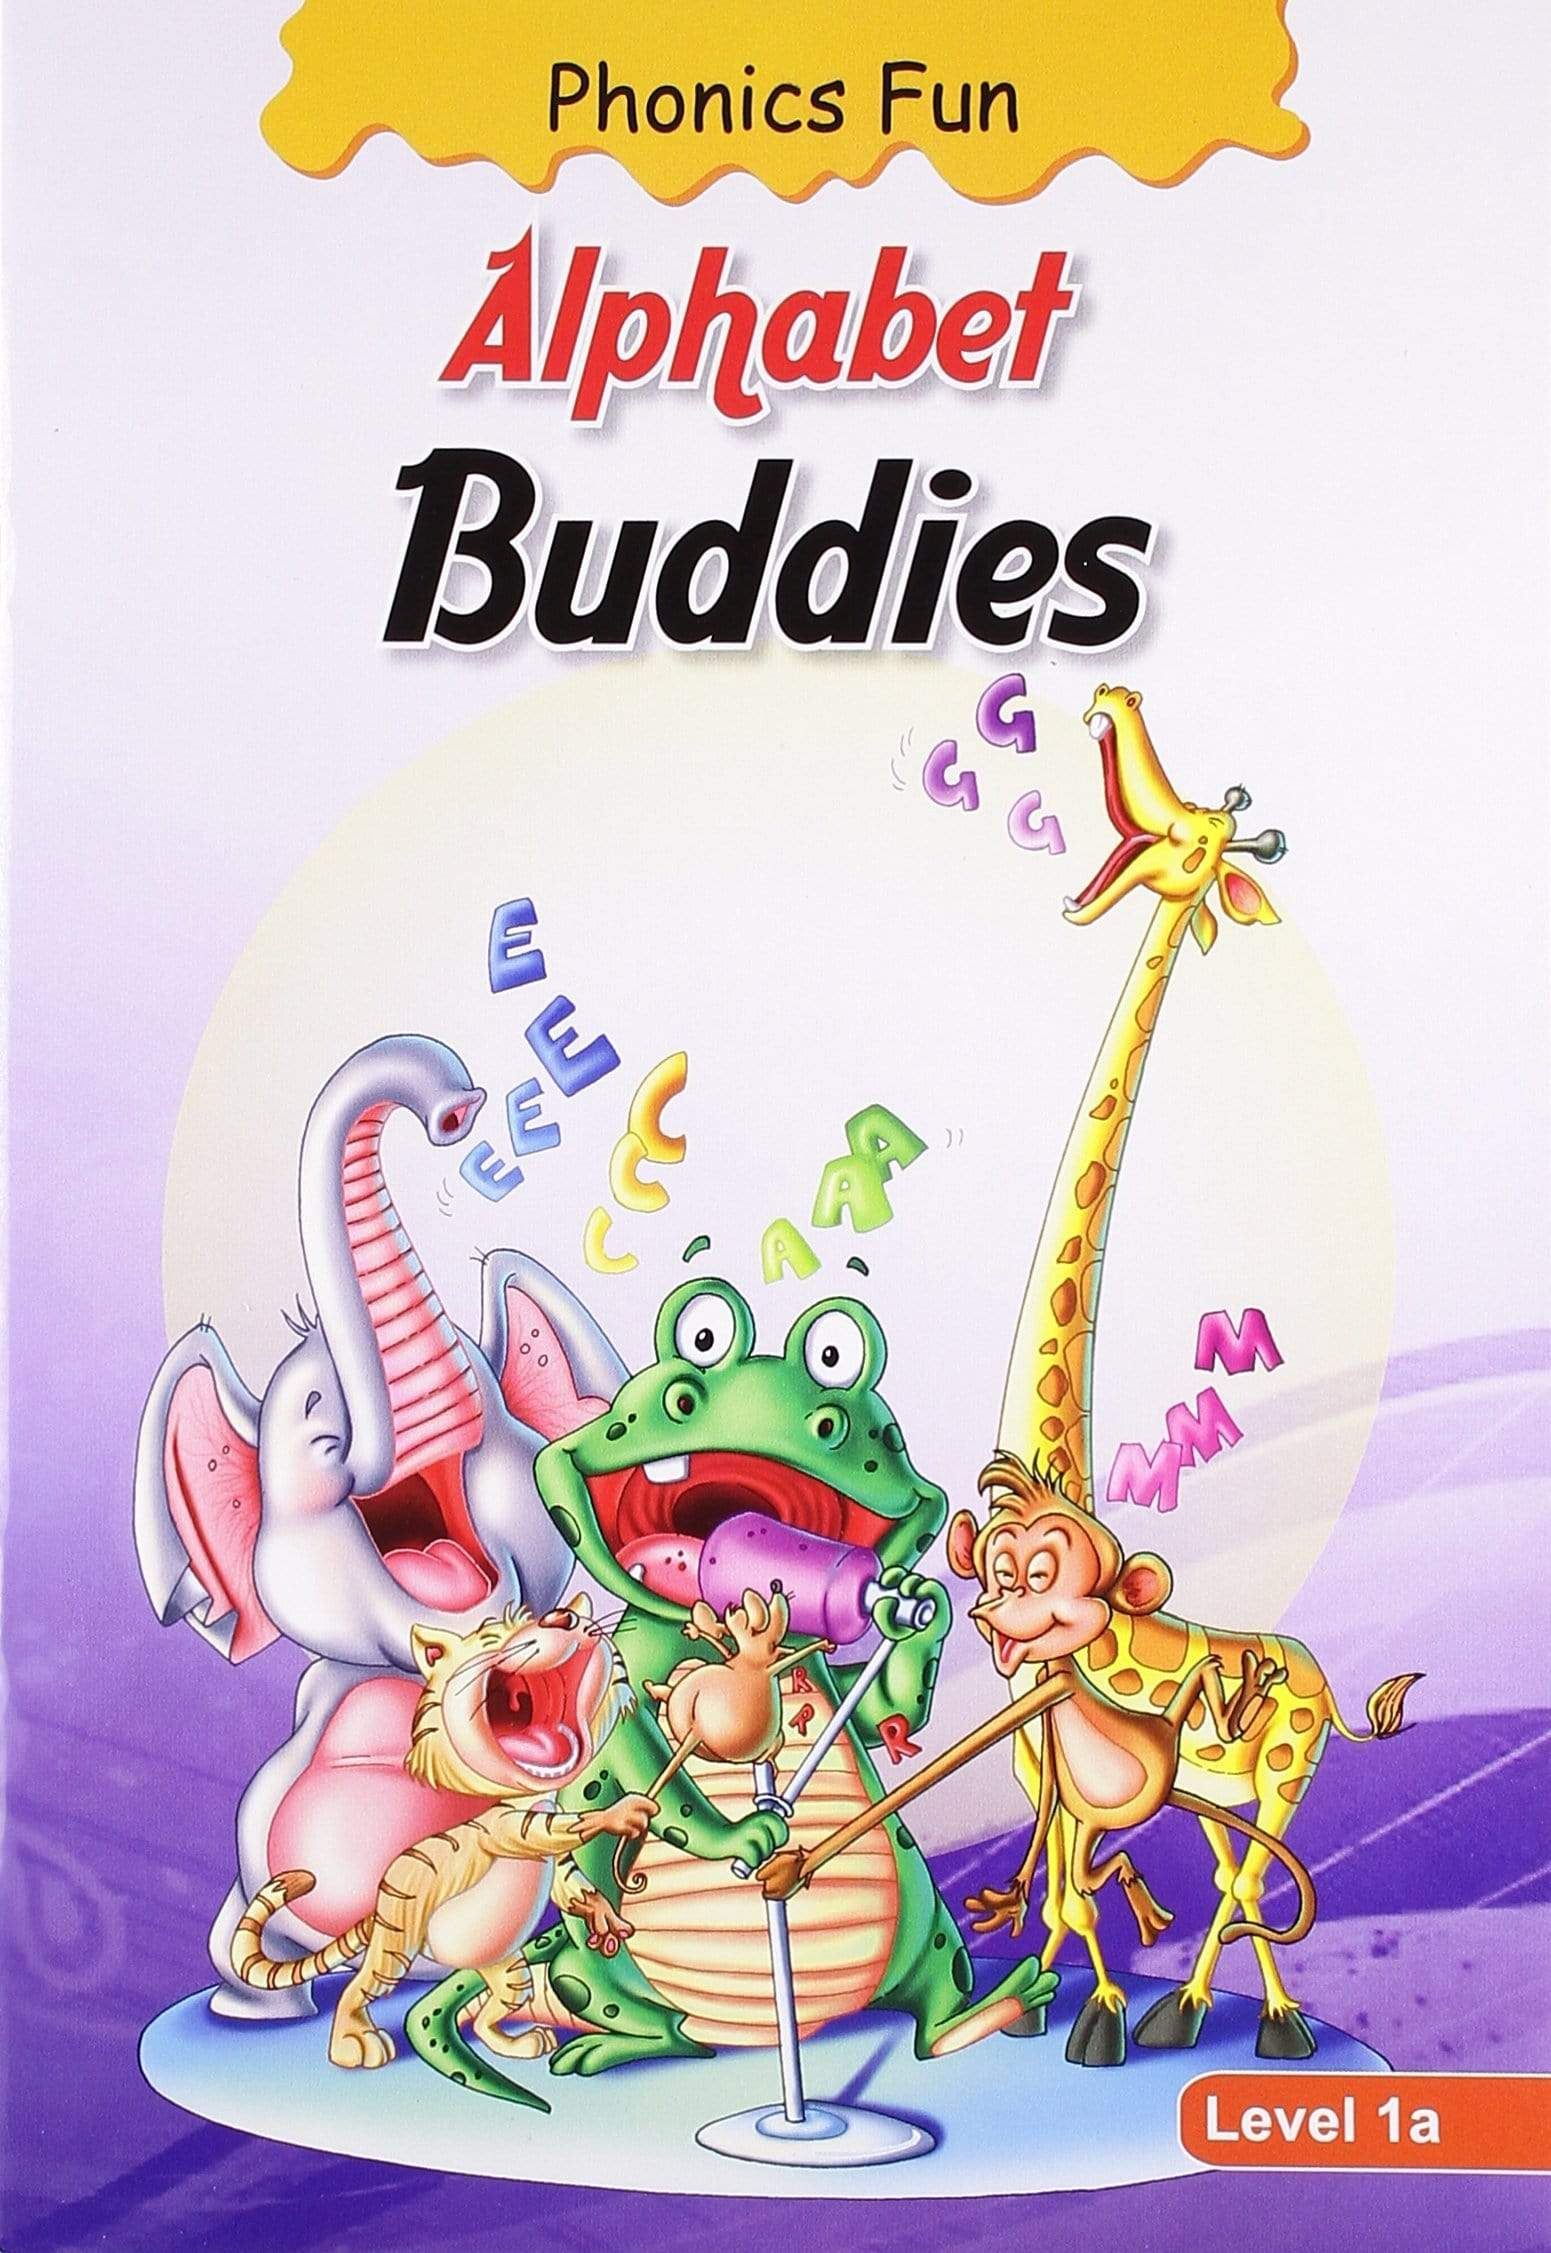 Phonics Fun: Alphabet Buddies - Level 1a